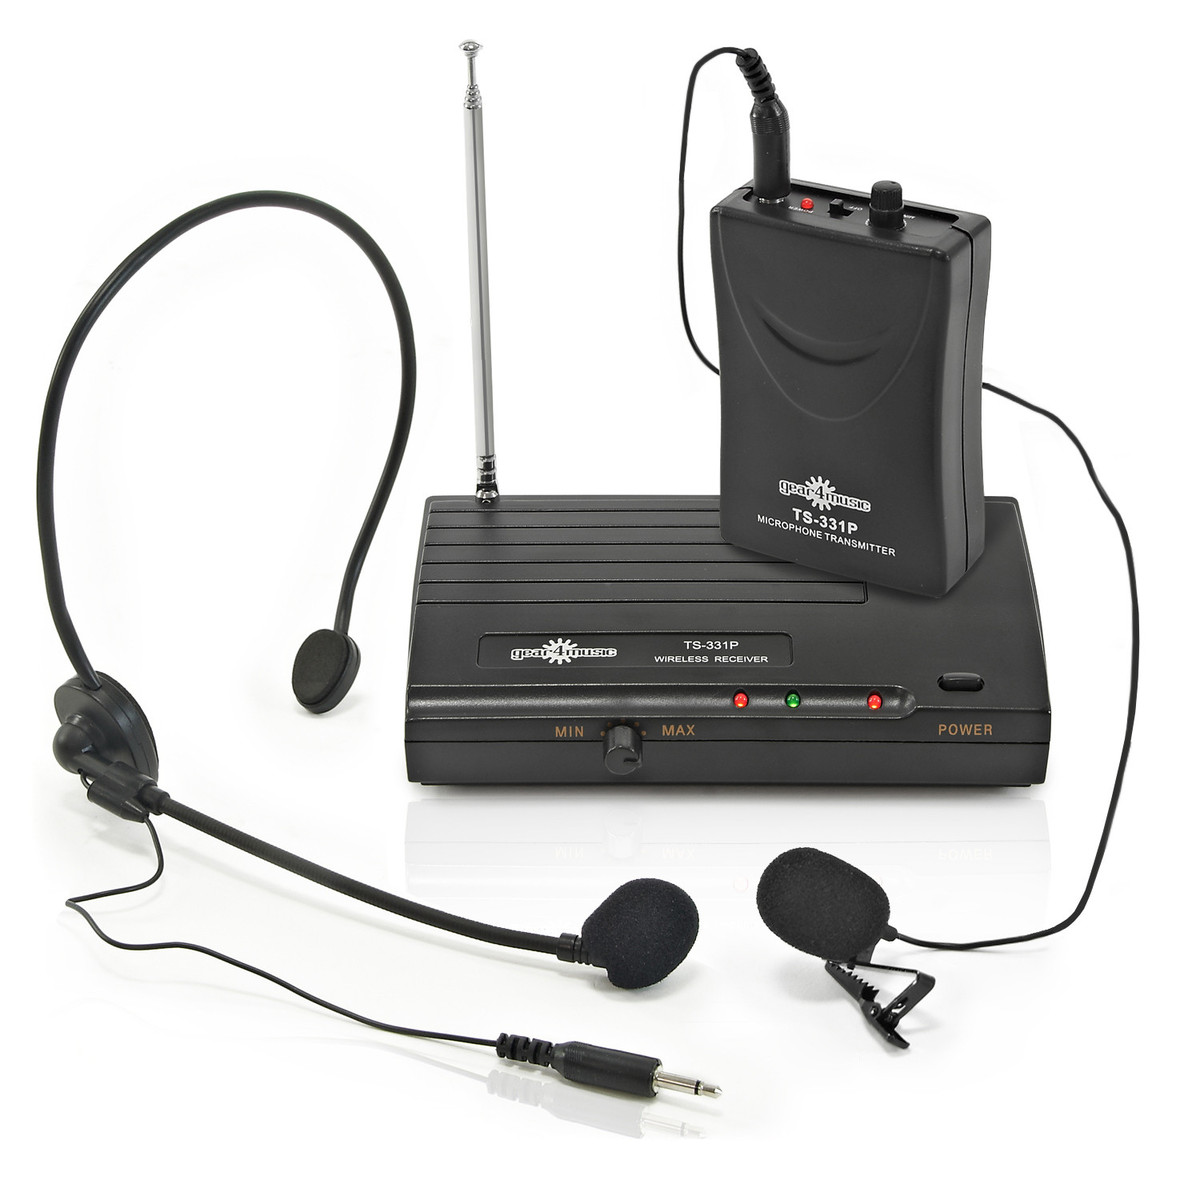 Wireless Microphone Headset and Lavalier Mic System by Gear4music | Gear4music